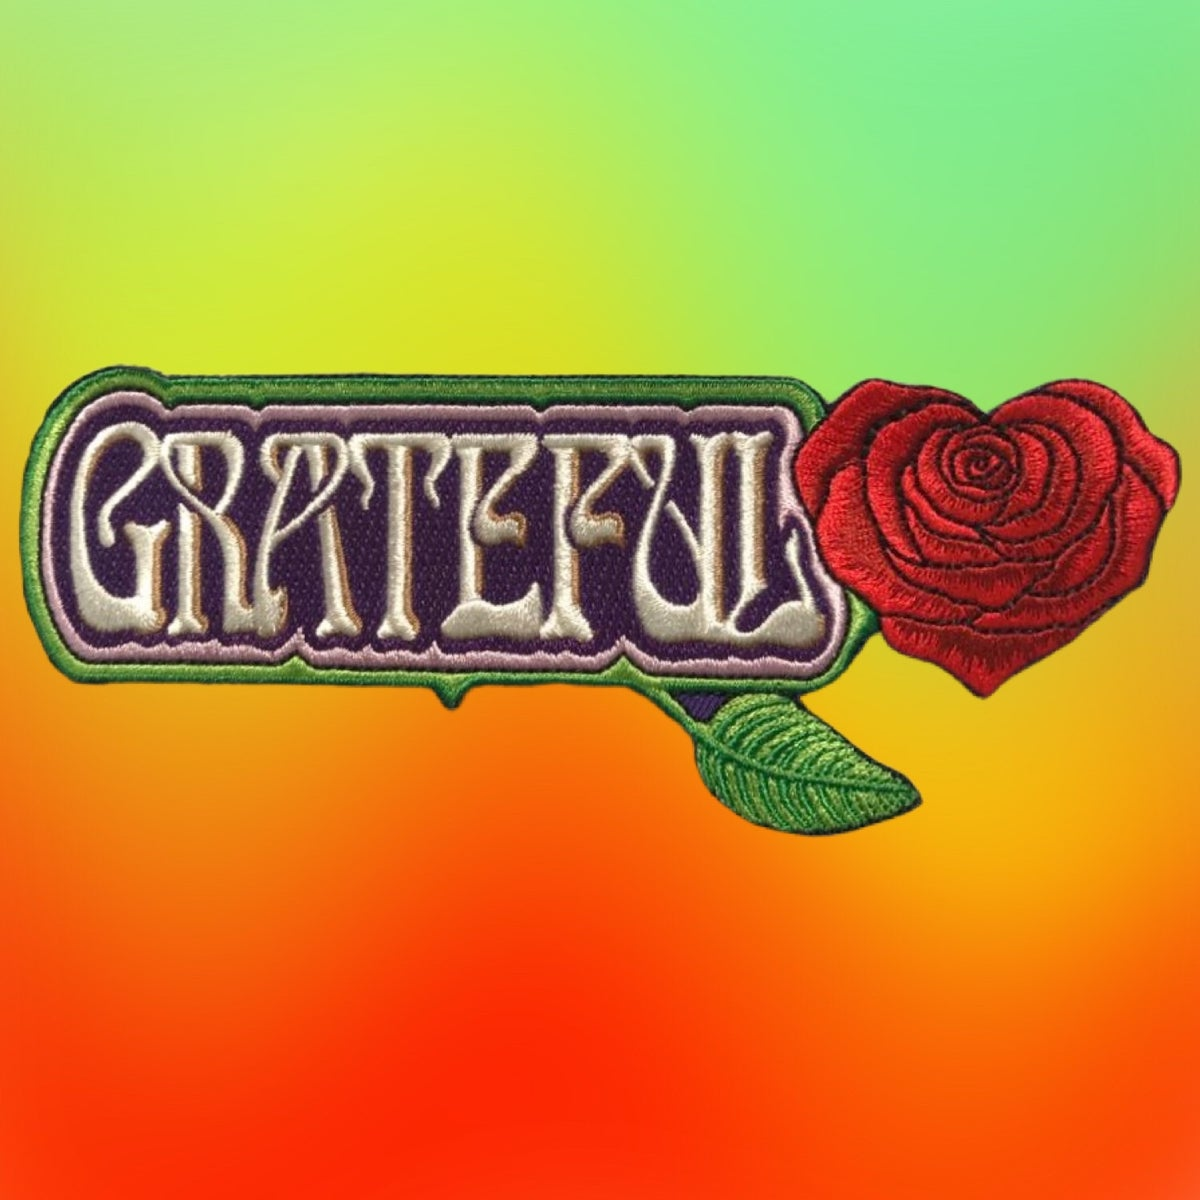 "Grateful Large Embroidered Patch!! 2.5""x6"""